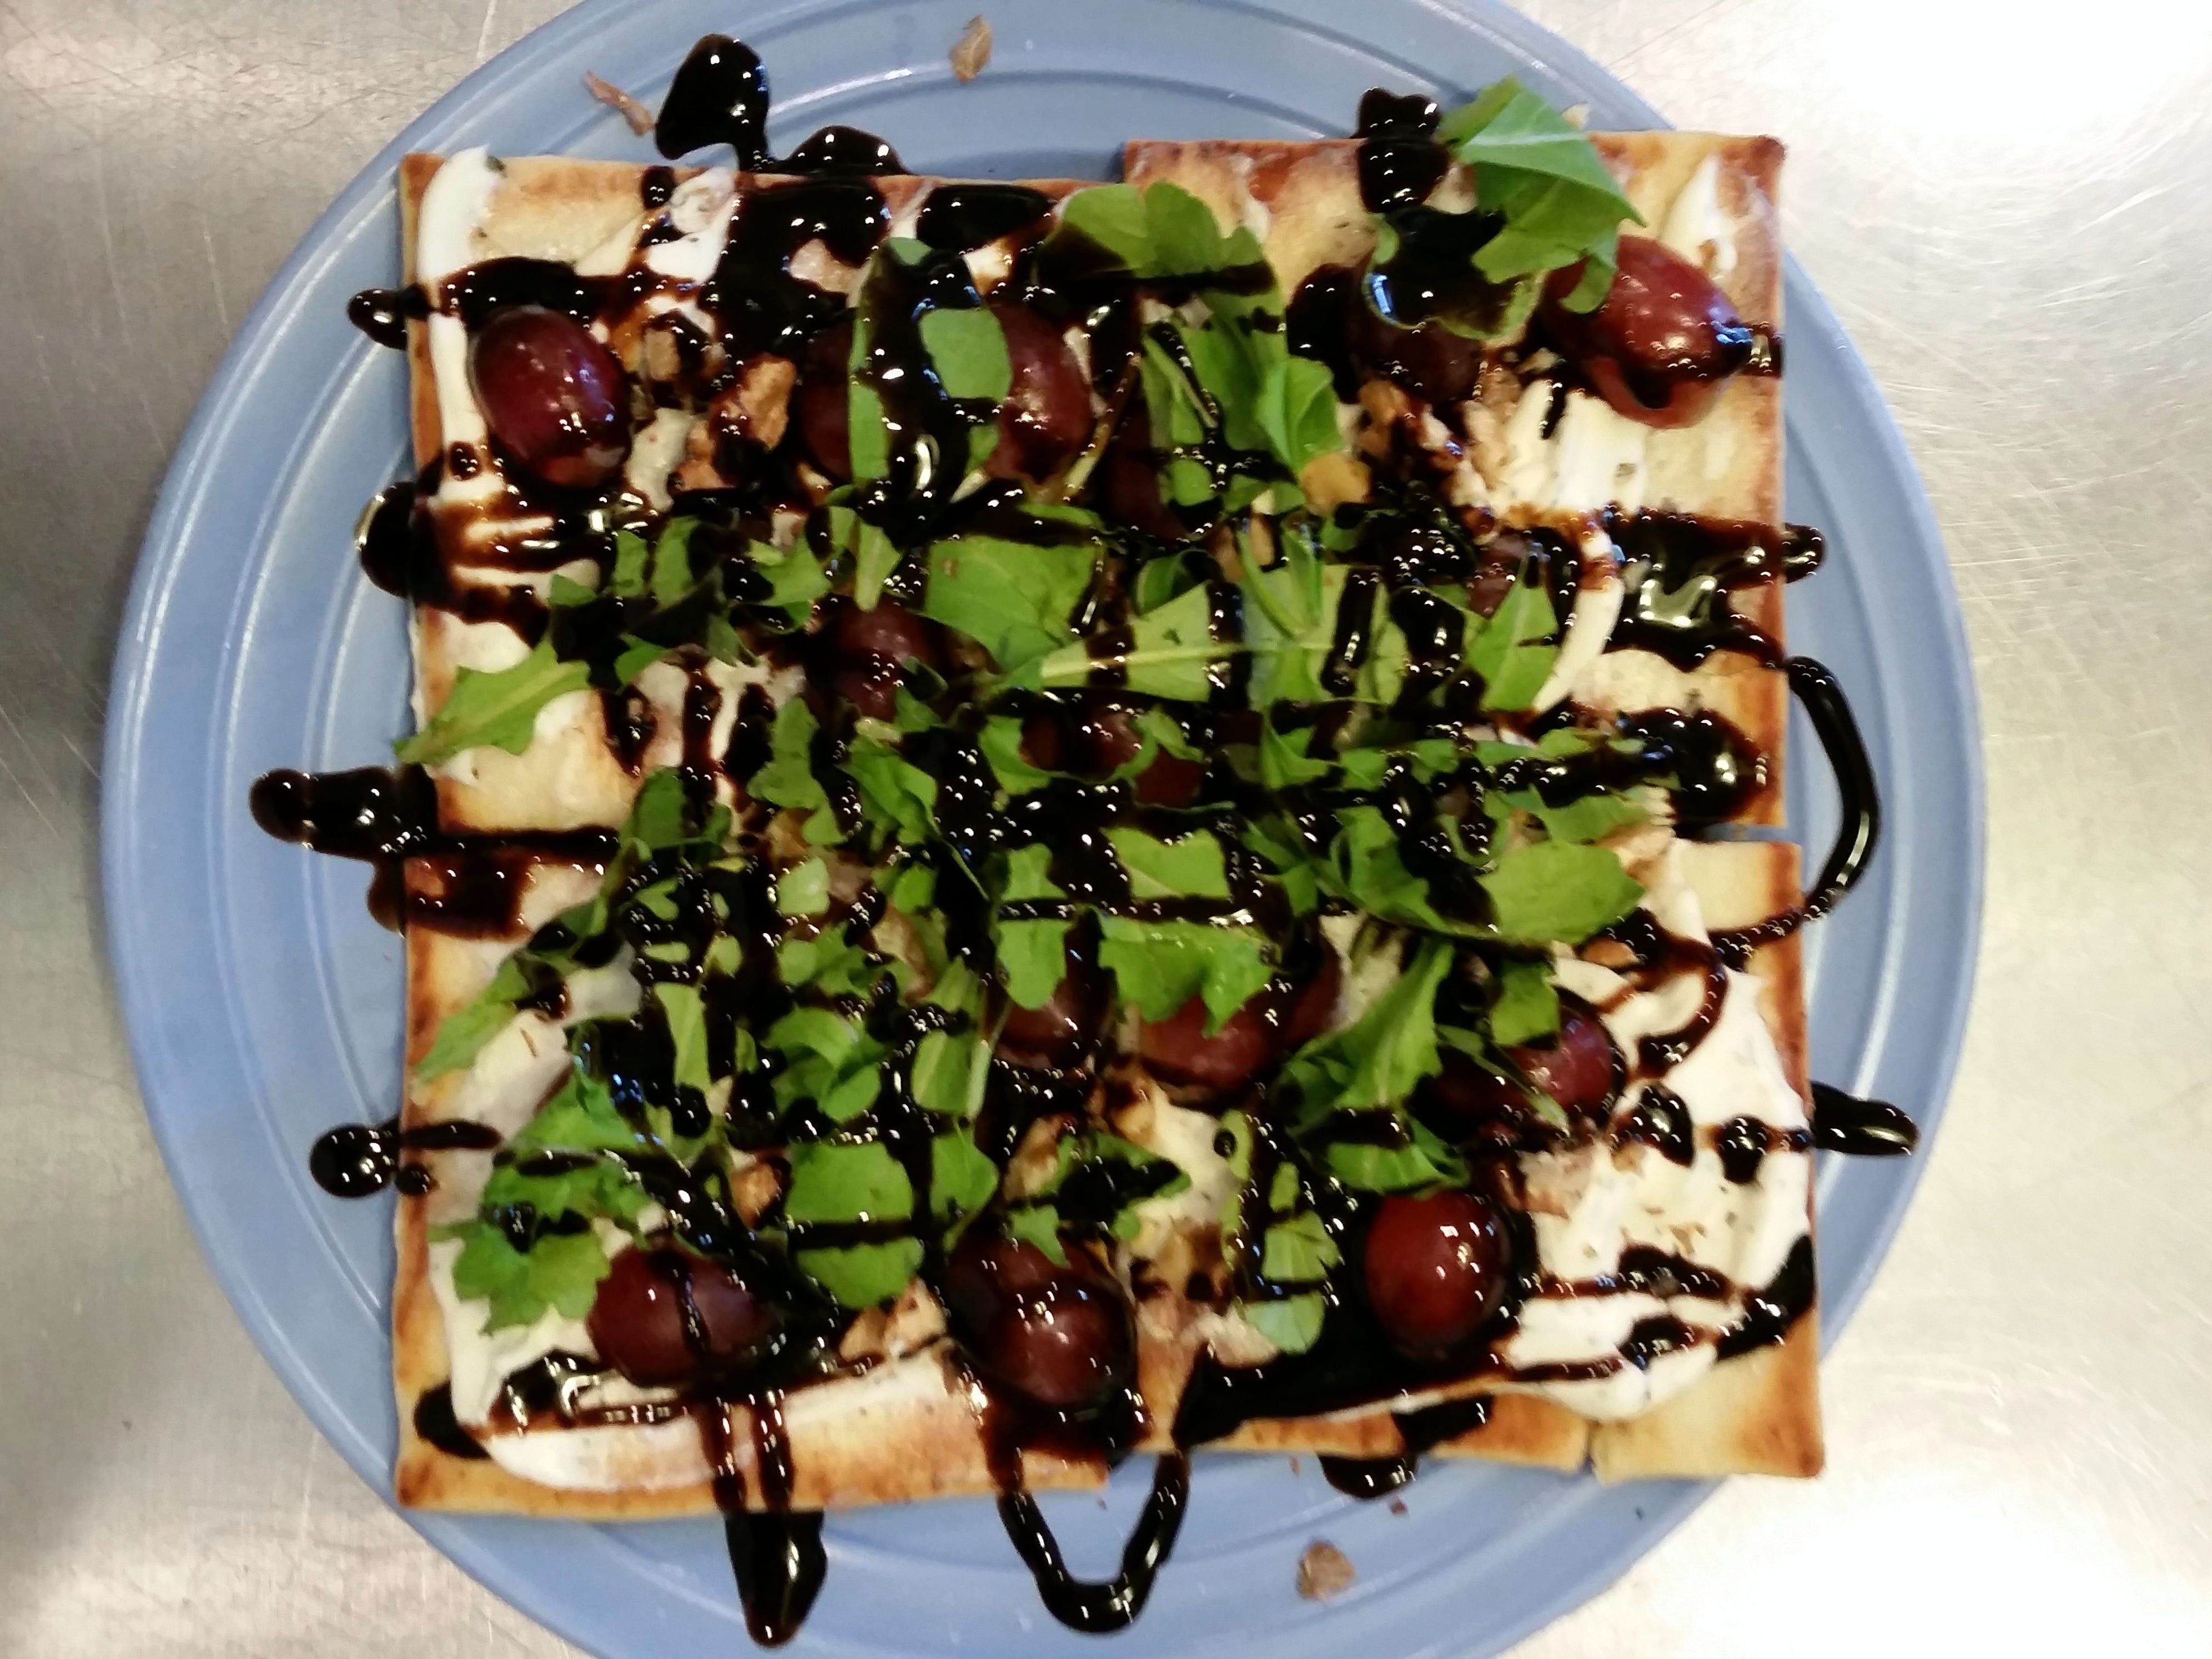 Red grape flatbread, topped with arugula and drizzled with a balsamic glaze, is a regular on the high tea menu.